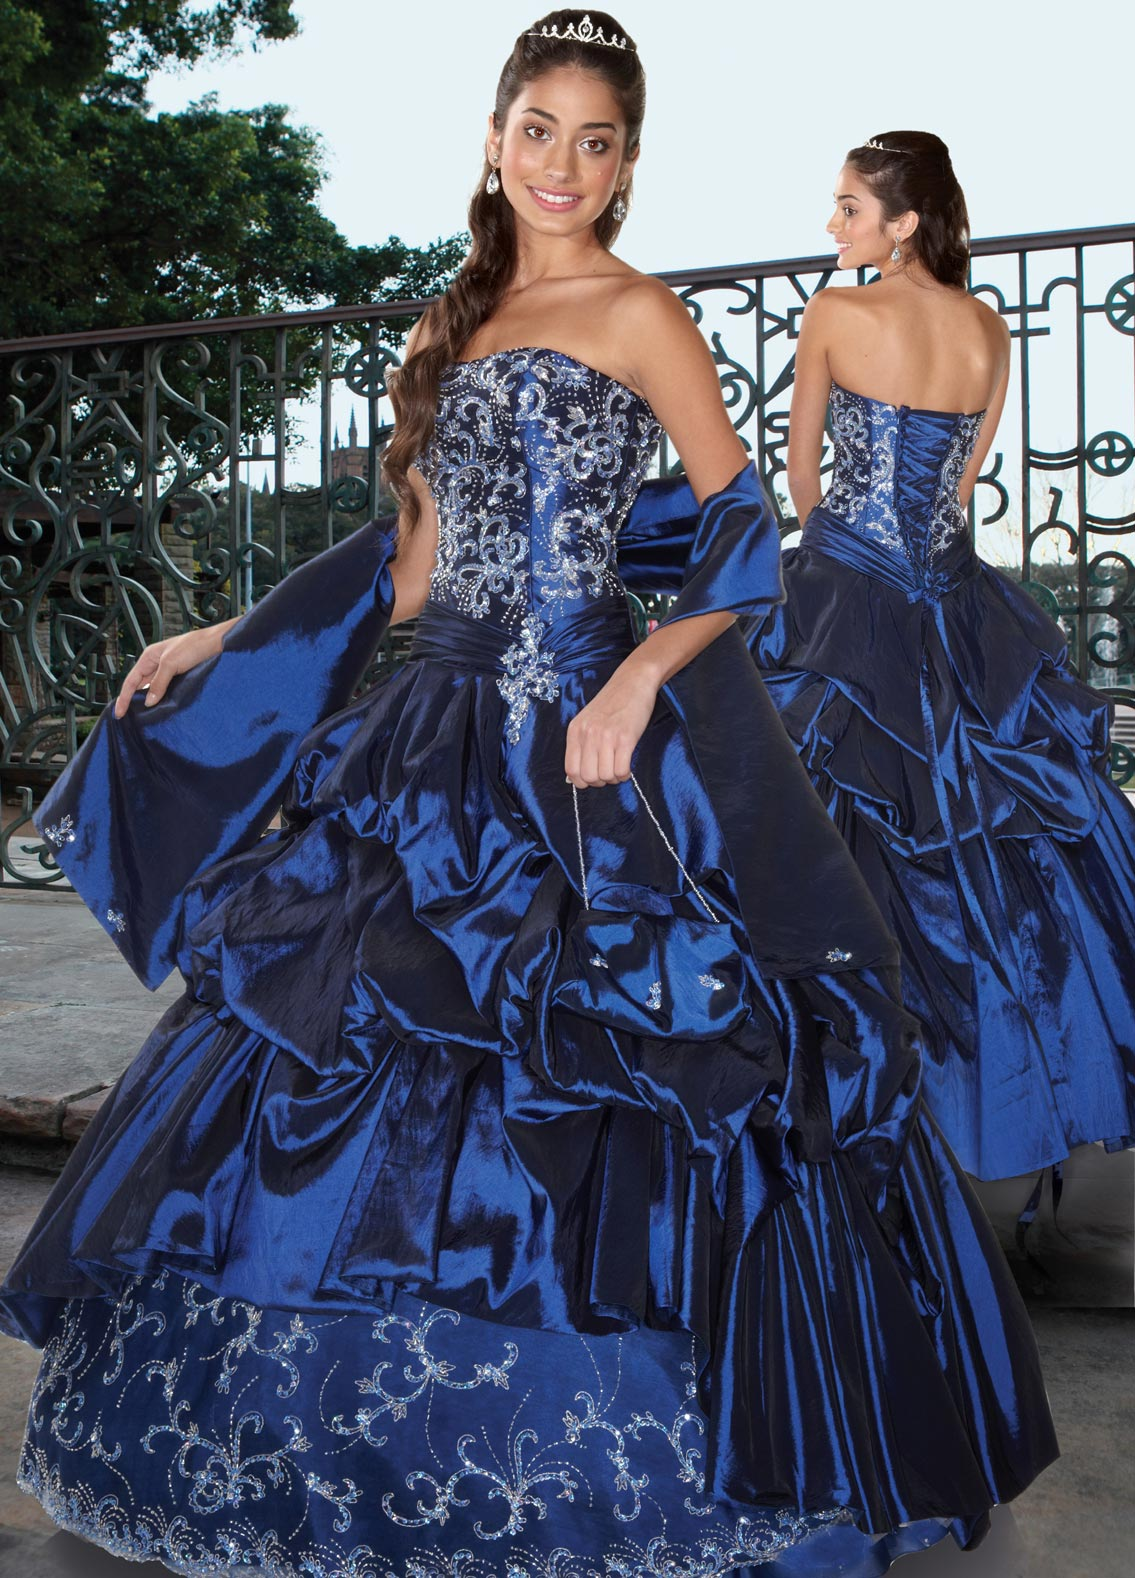 Royal Blue Strapless Lace Up Floor Length Ball Gown Quinceanera Dresses With Beading Embroidery And Ruffles